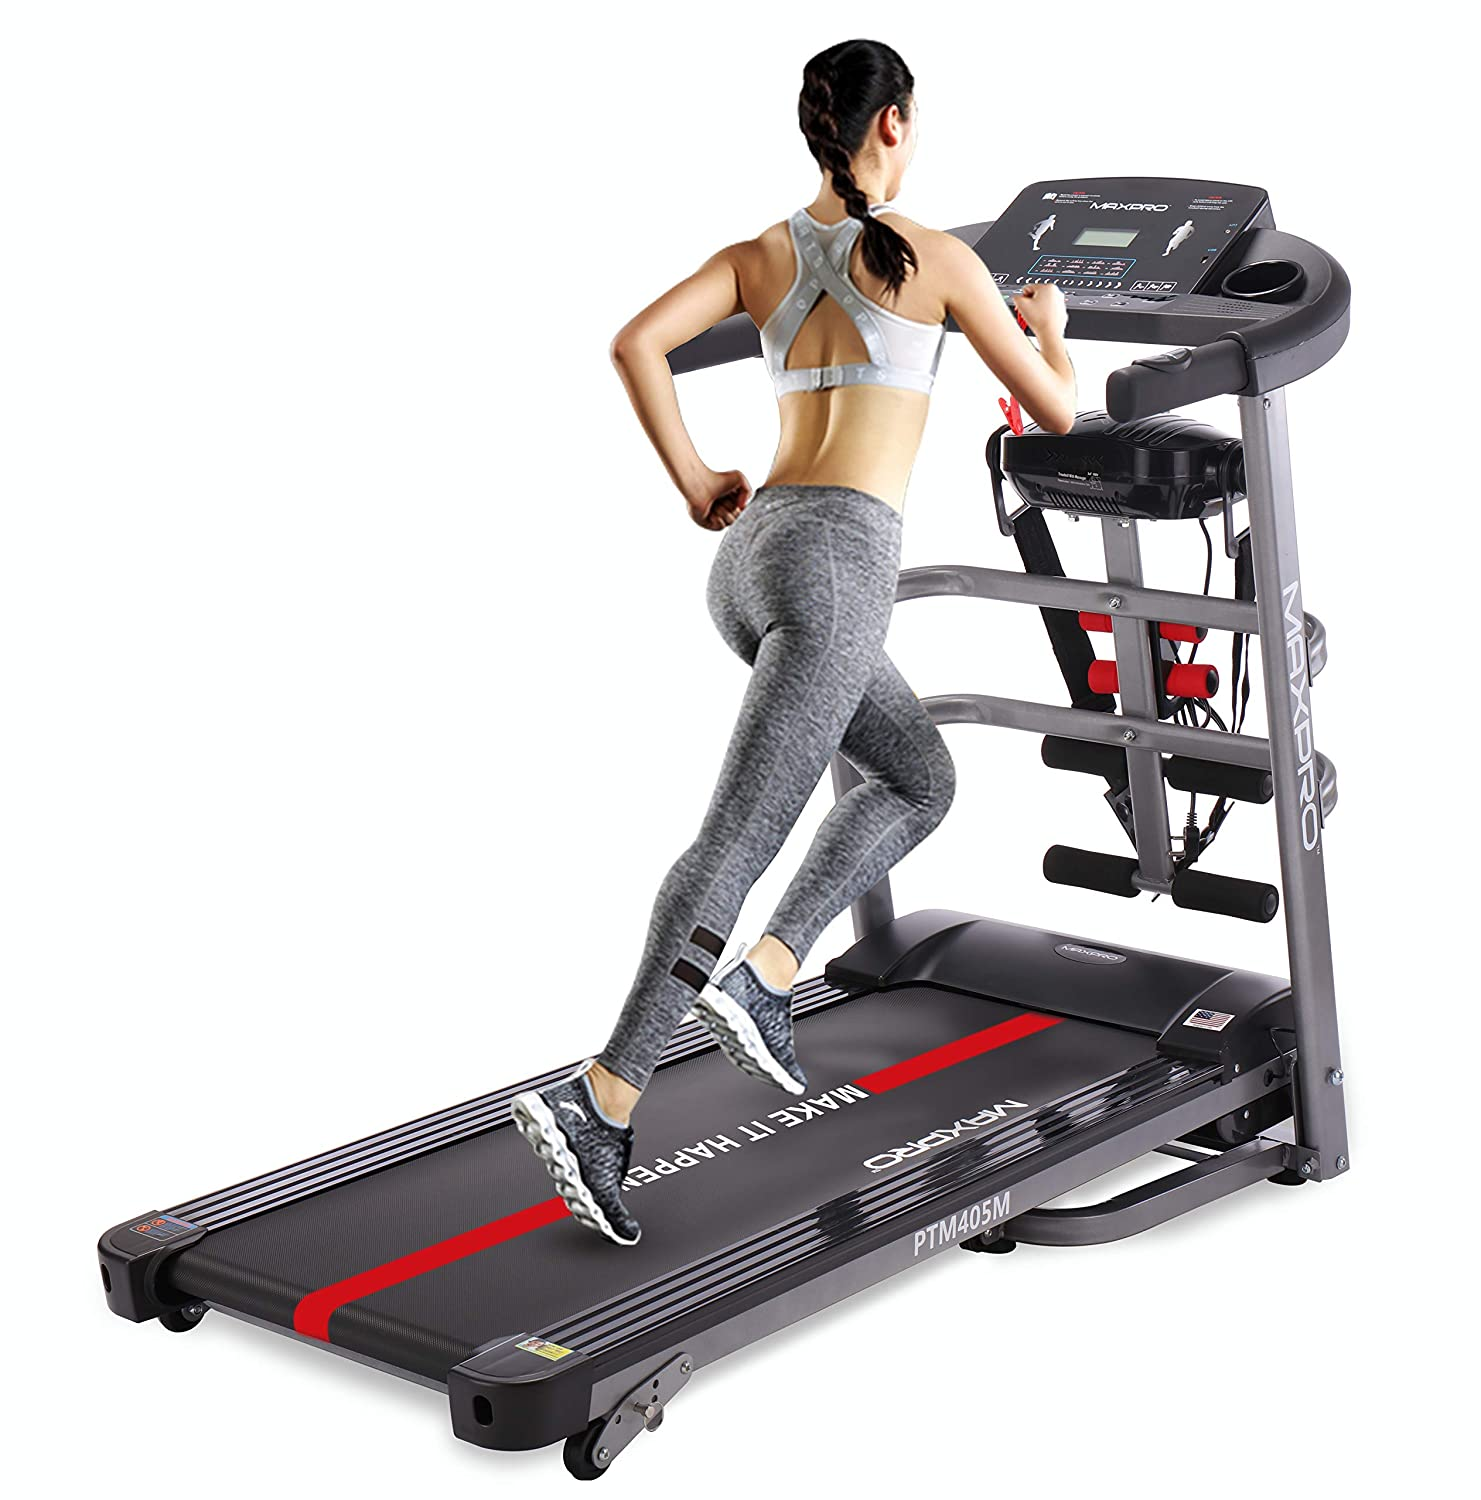 Best 5 Electric Running Machine India 2021